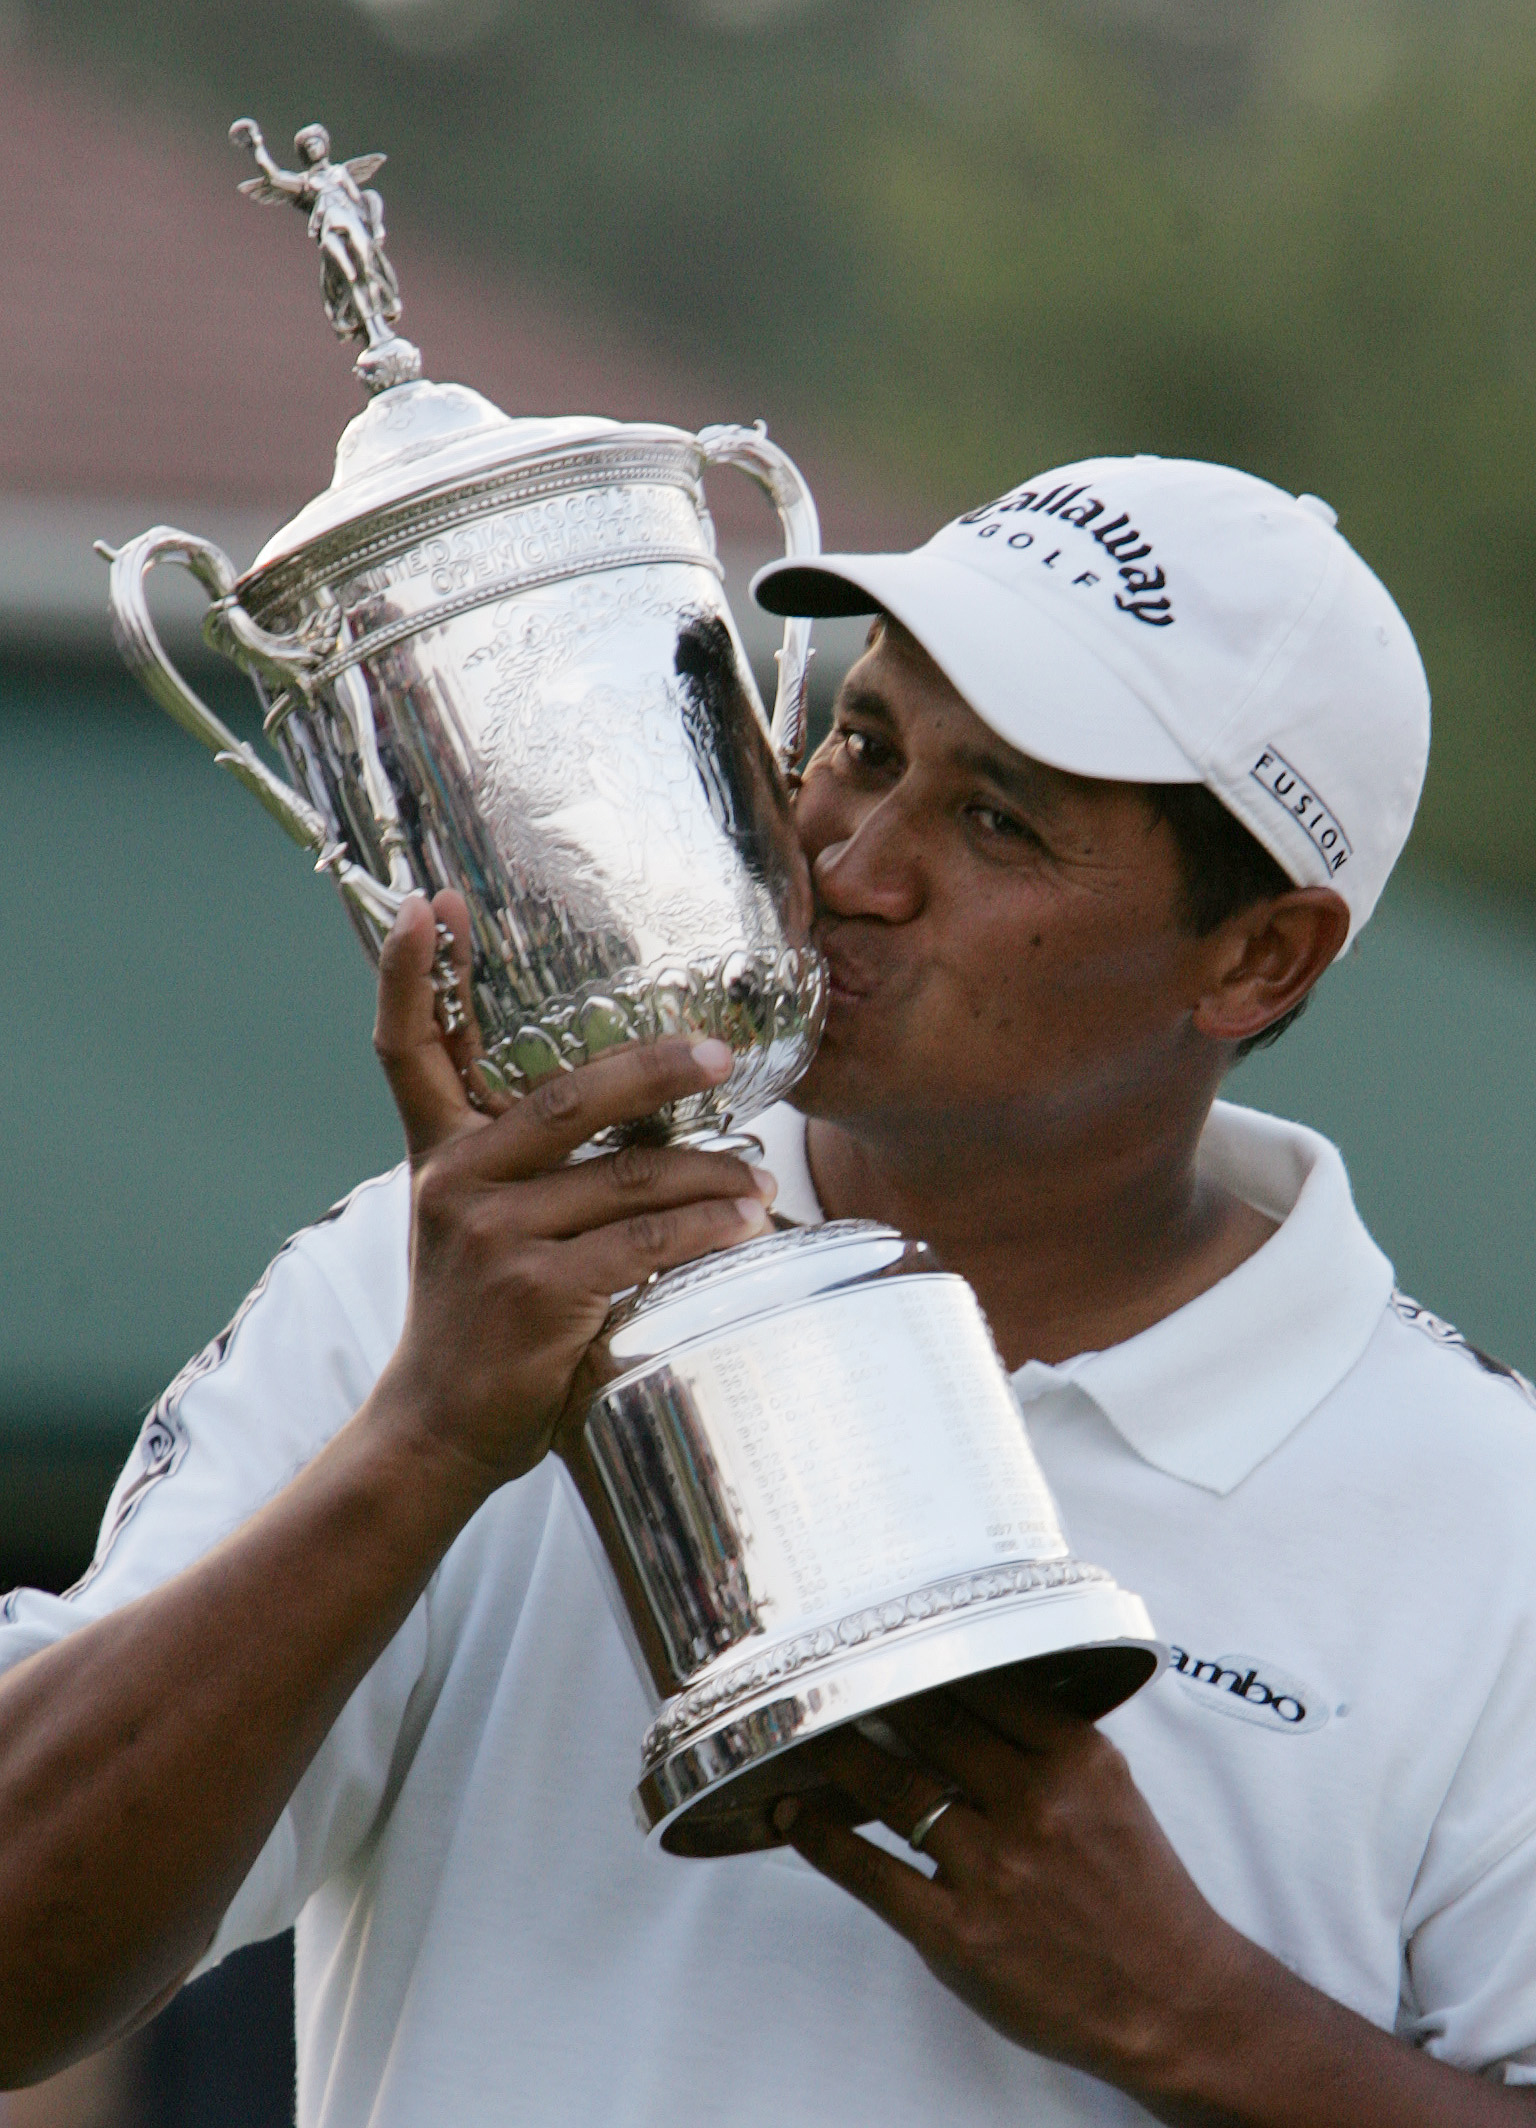 Michael Campbell after winning the U.S. Open in 2005.